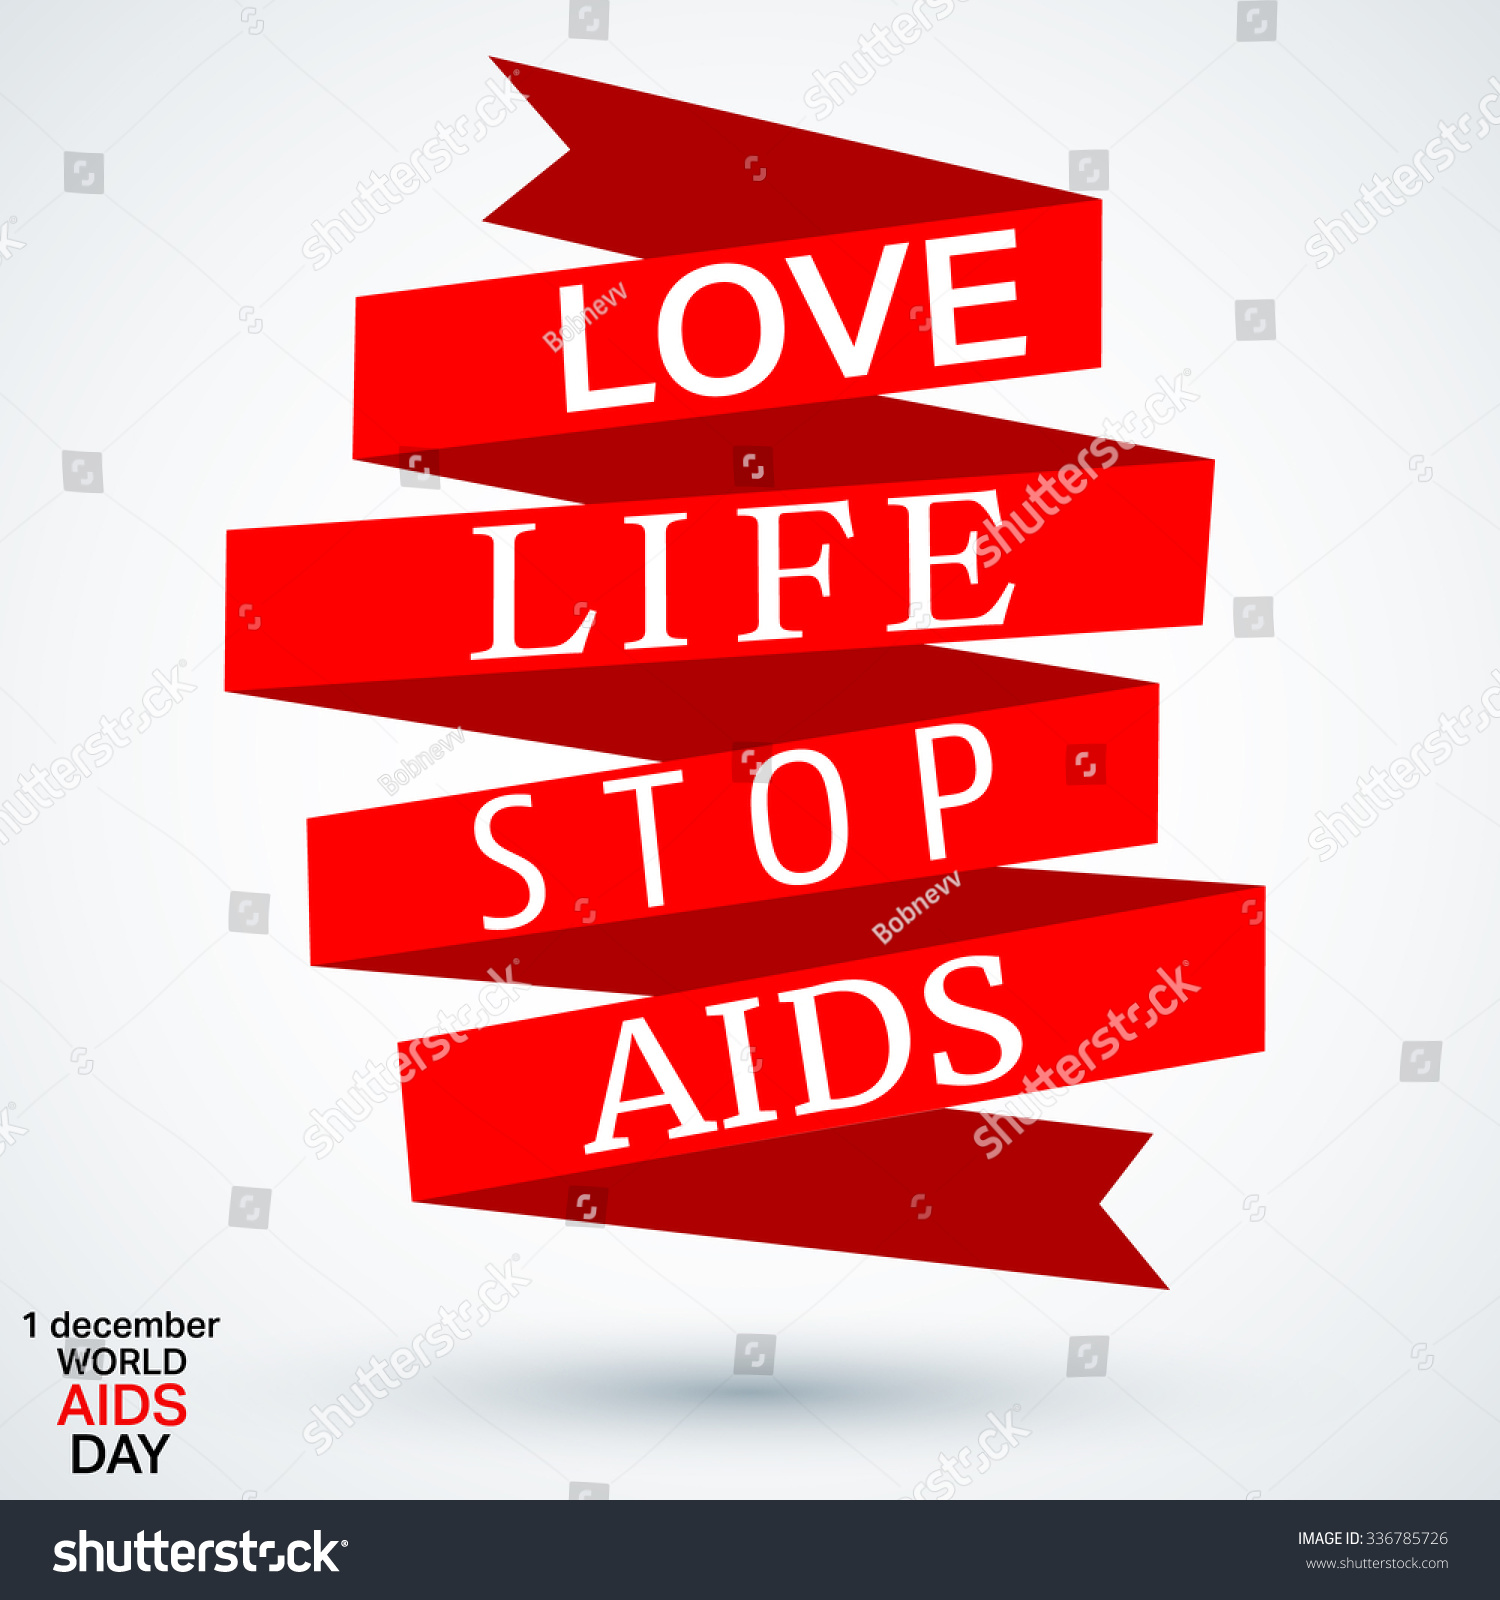 Love Life.  Stop AIDS